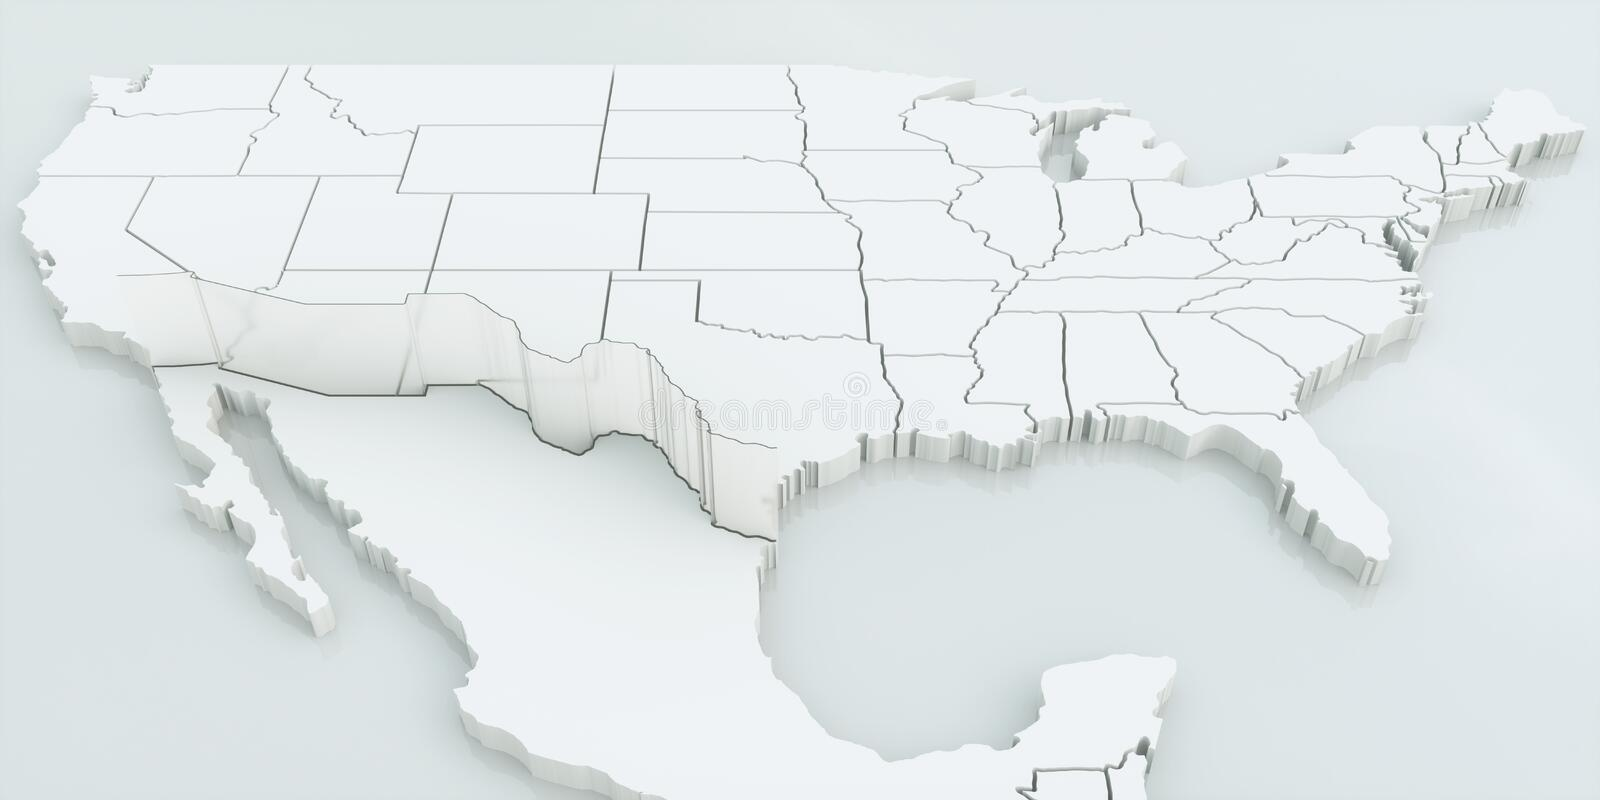 download wall between usa and mexico highly detailed 3d rendering stock illustration illustration of